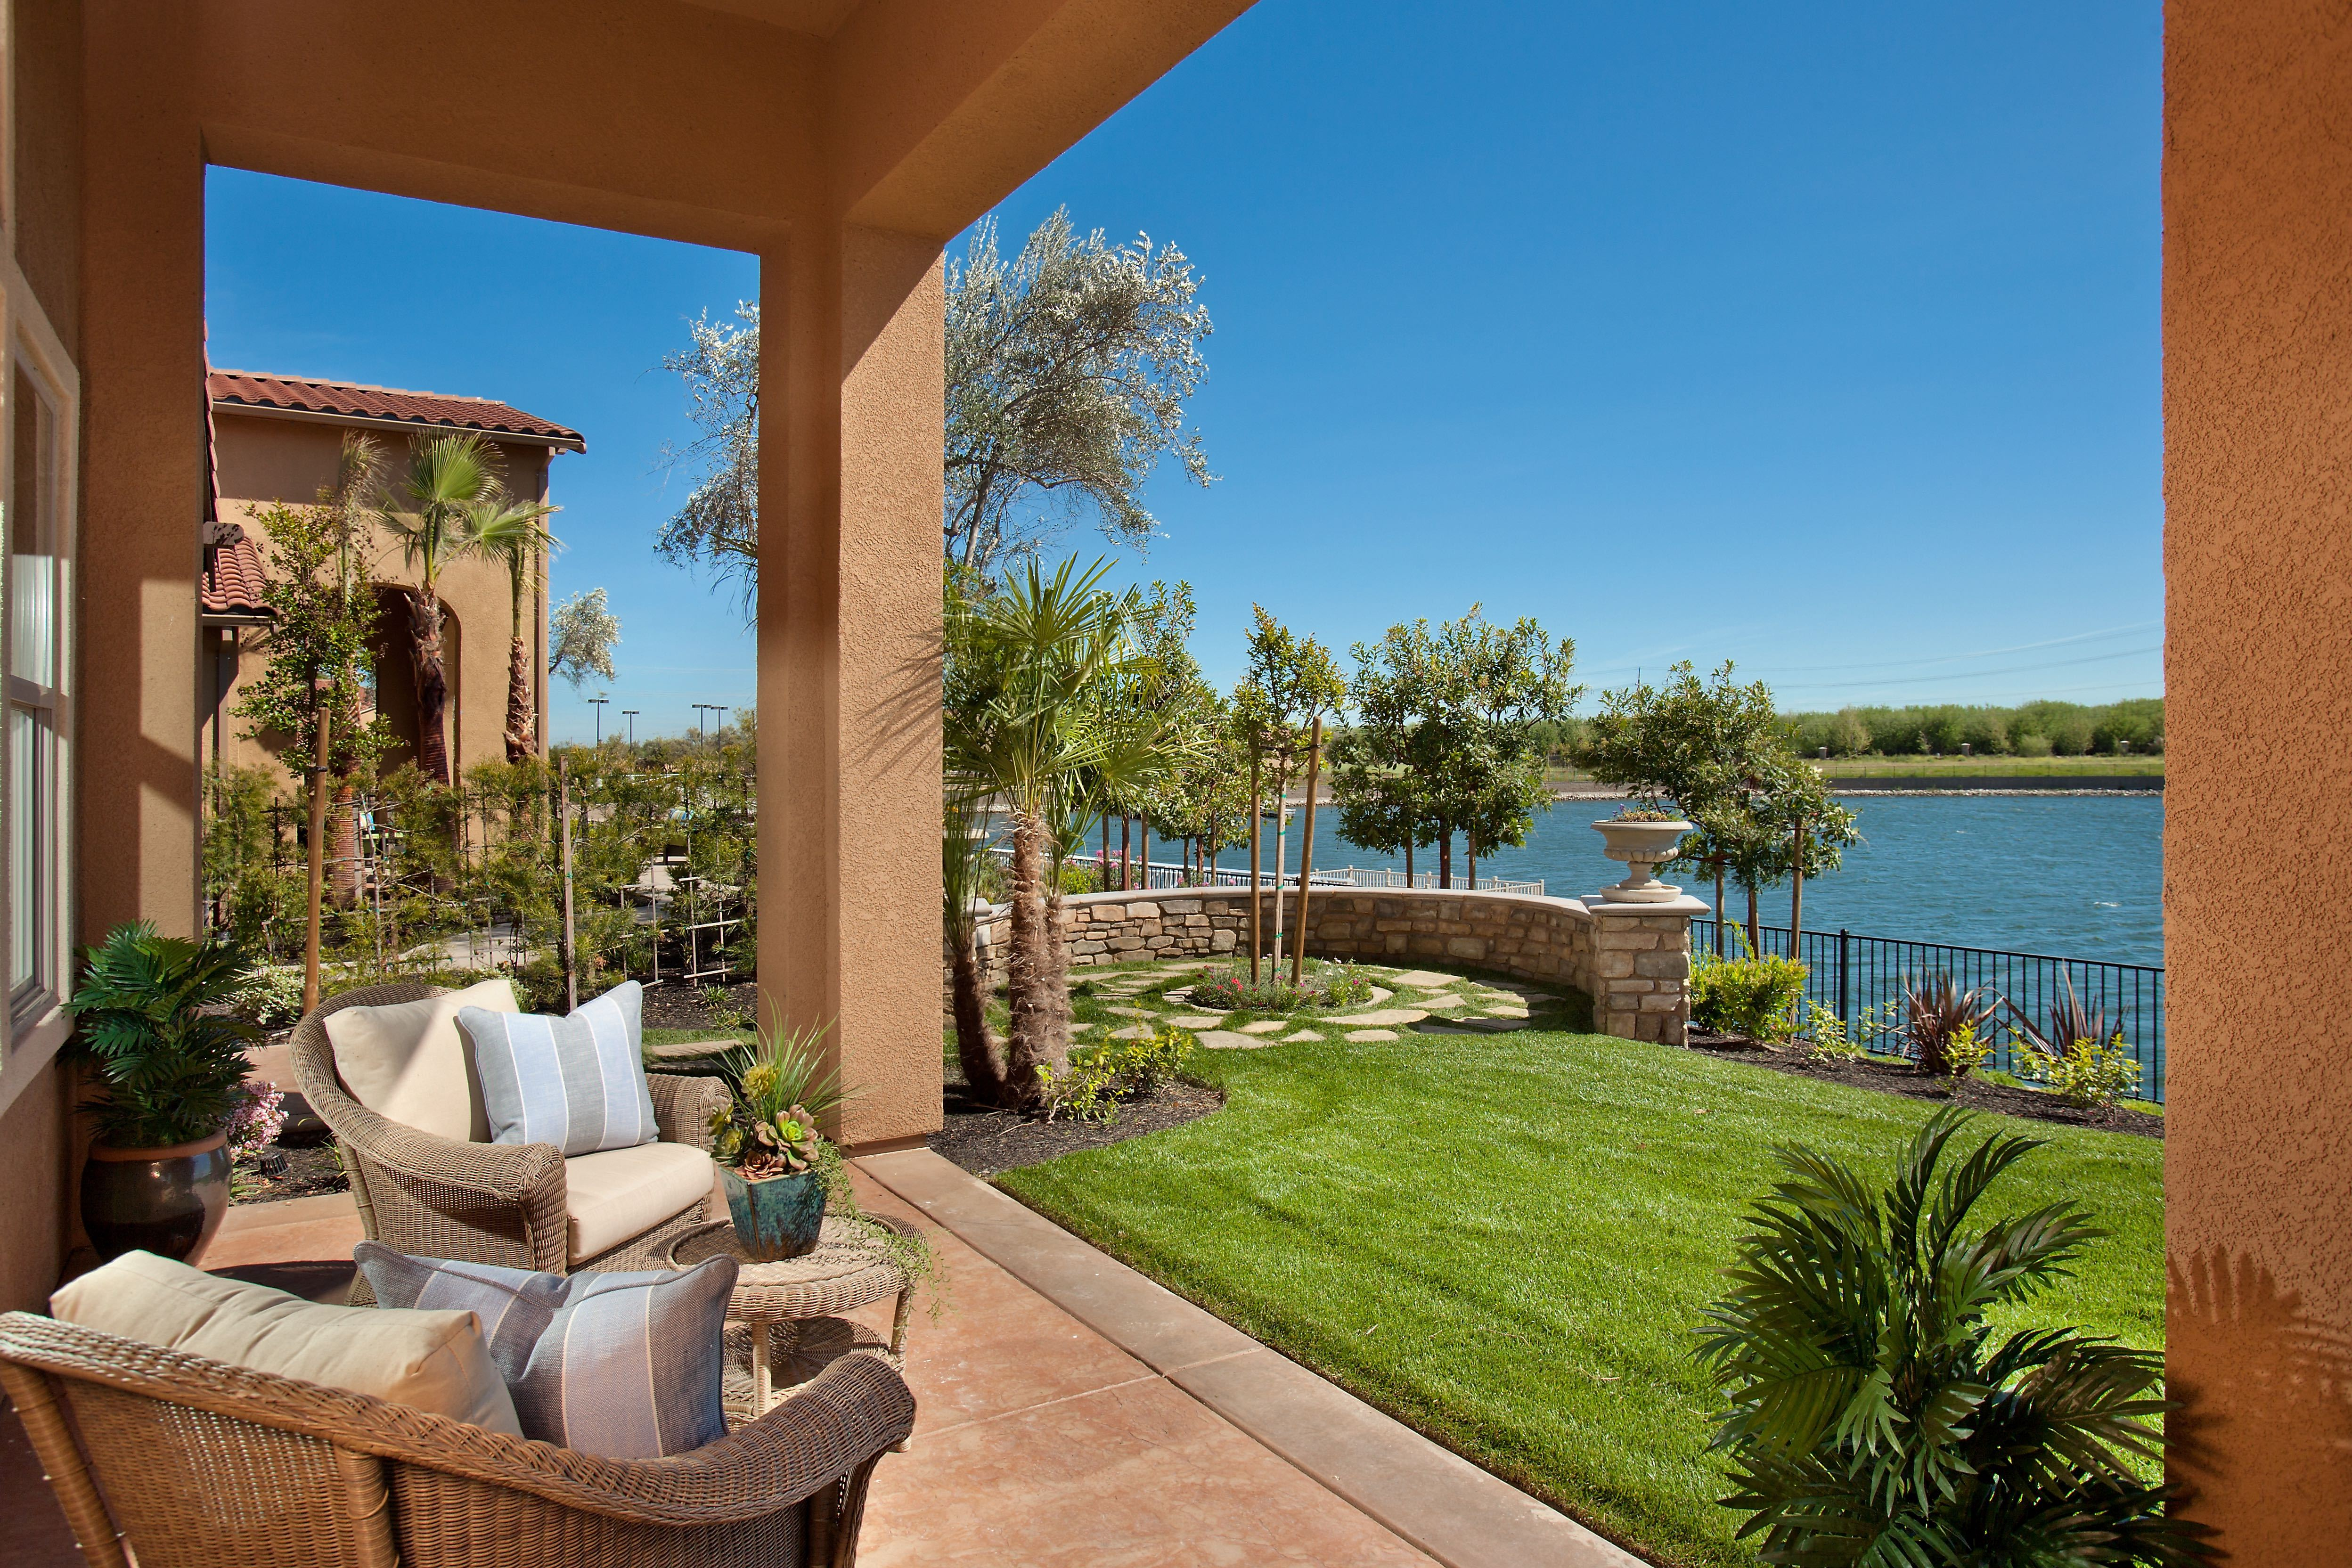 'Oakwood Shores' by Lafferty Communities (Non MLS B) in Stockton-Lodi